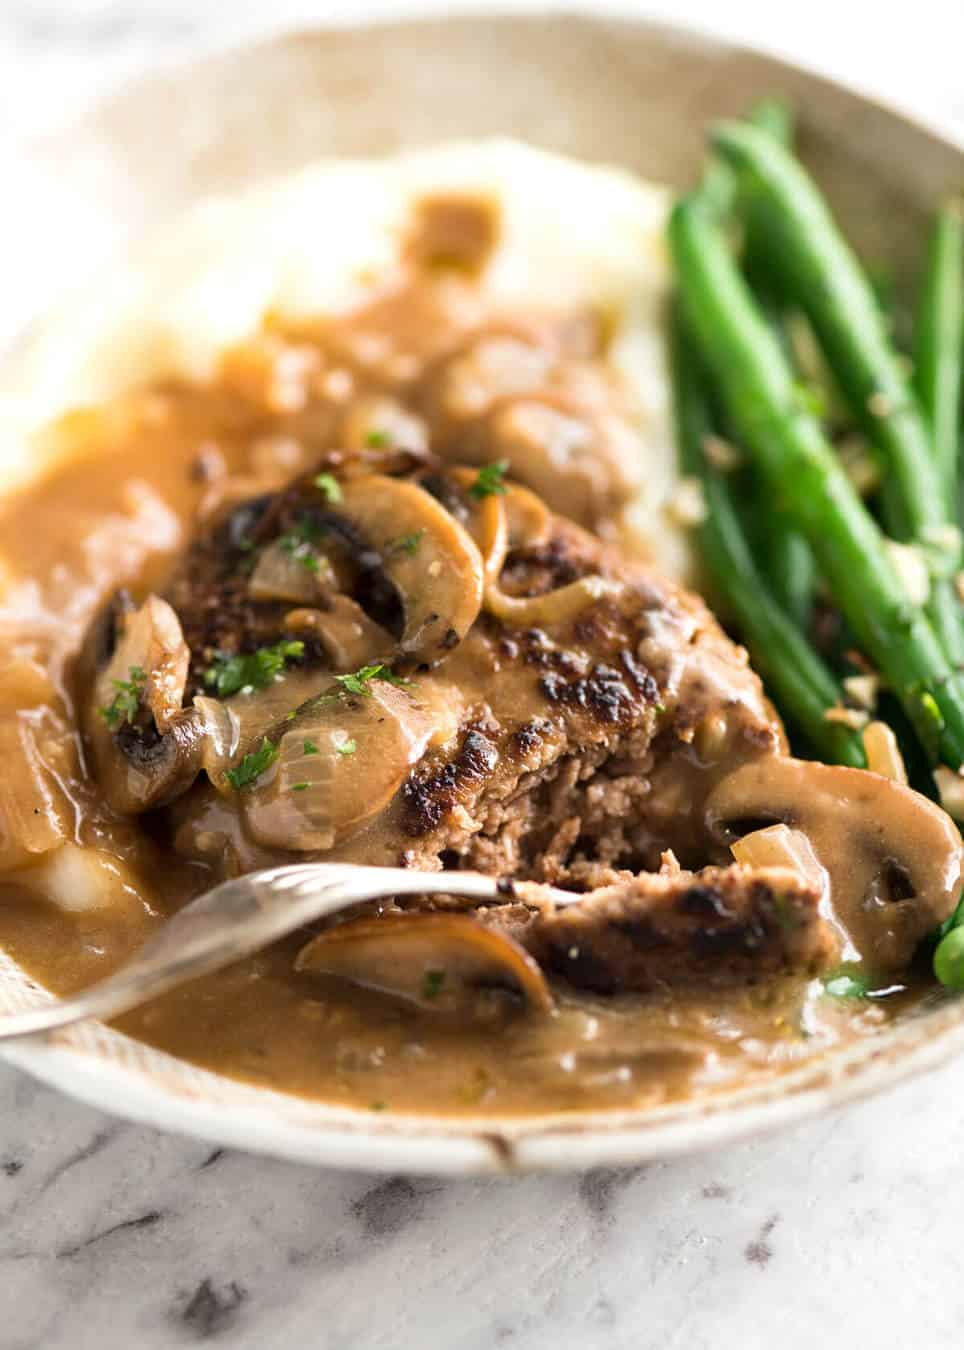 Close up of Salisbury Steak recipe on a plate with mashed potato and green beans.